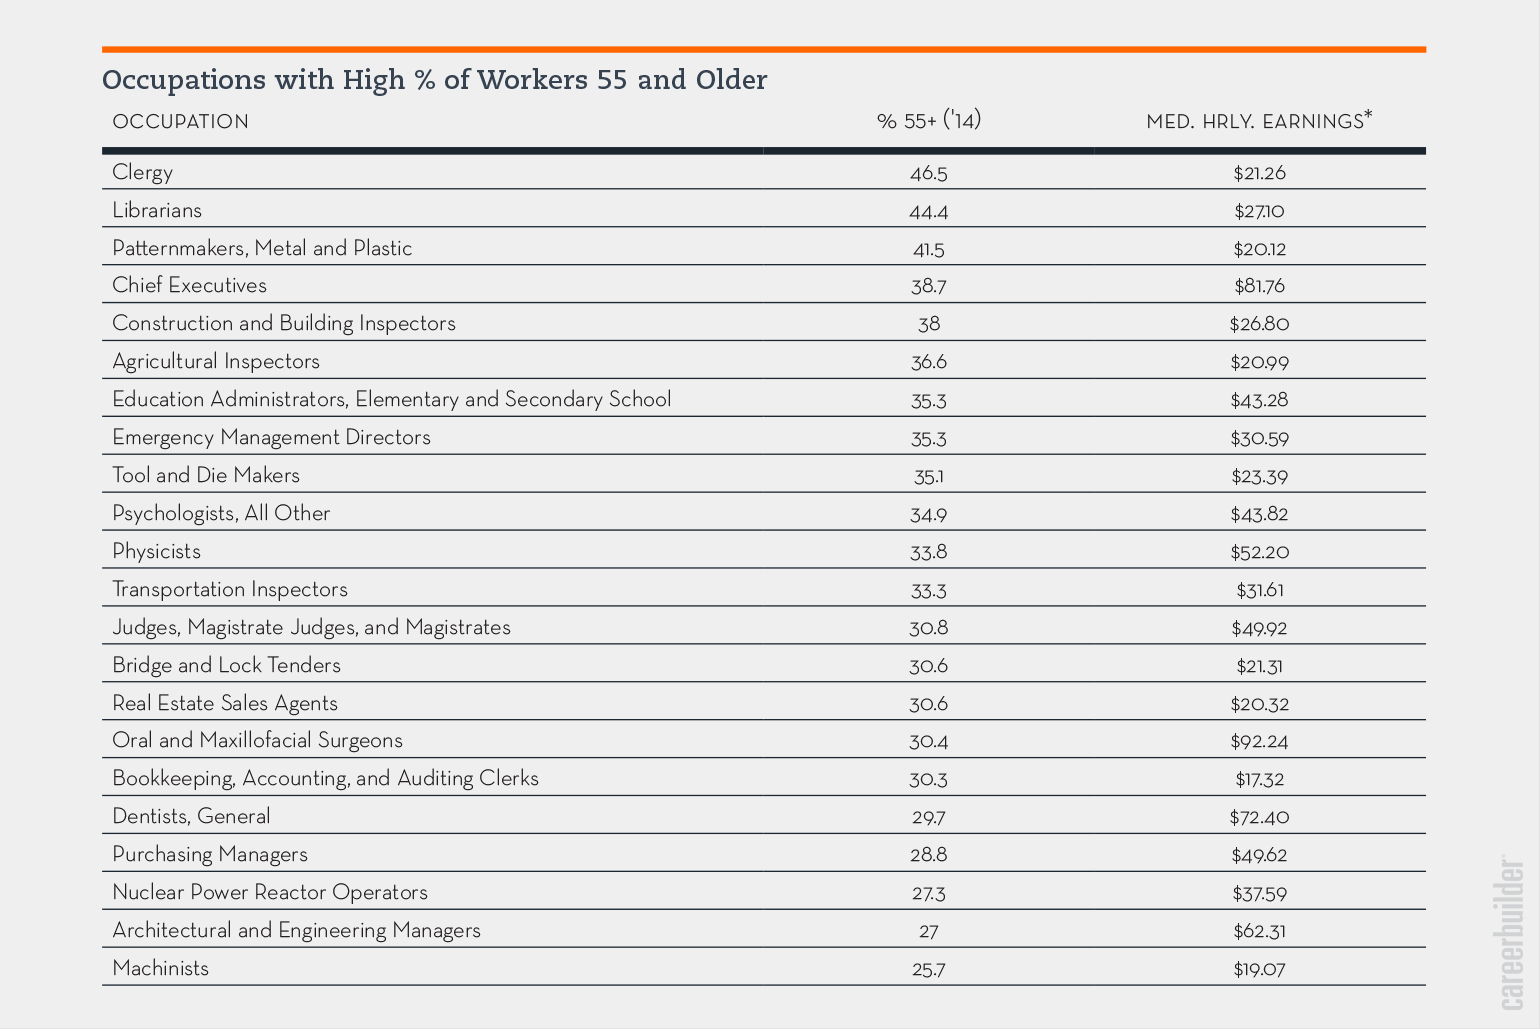 top occupations for workers over finance so what can workers young and old make of this data well if you re 55 and older and in one of these fields you know that you re in one of the top